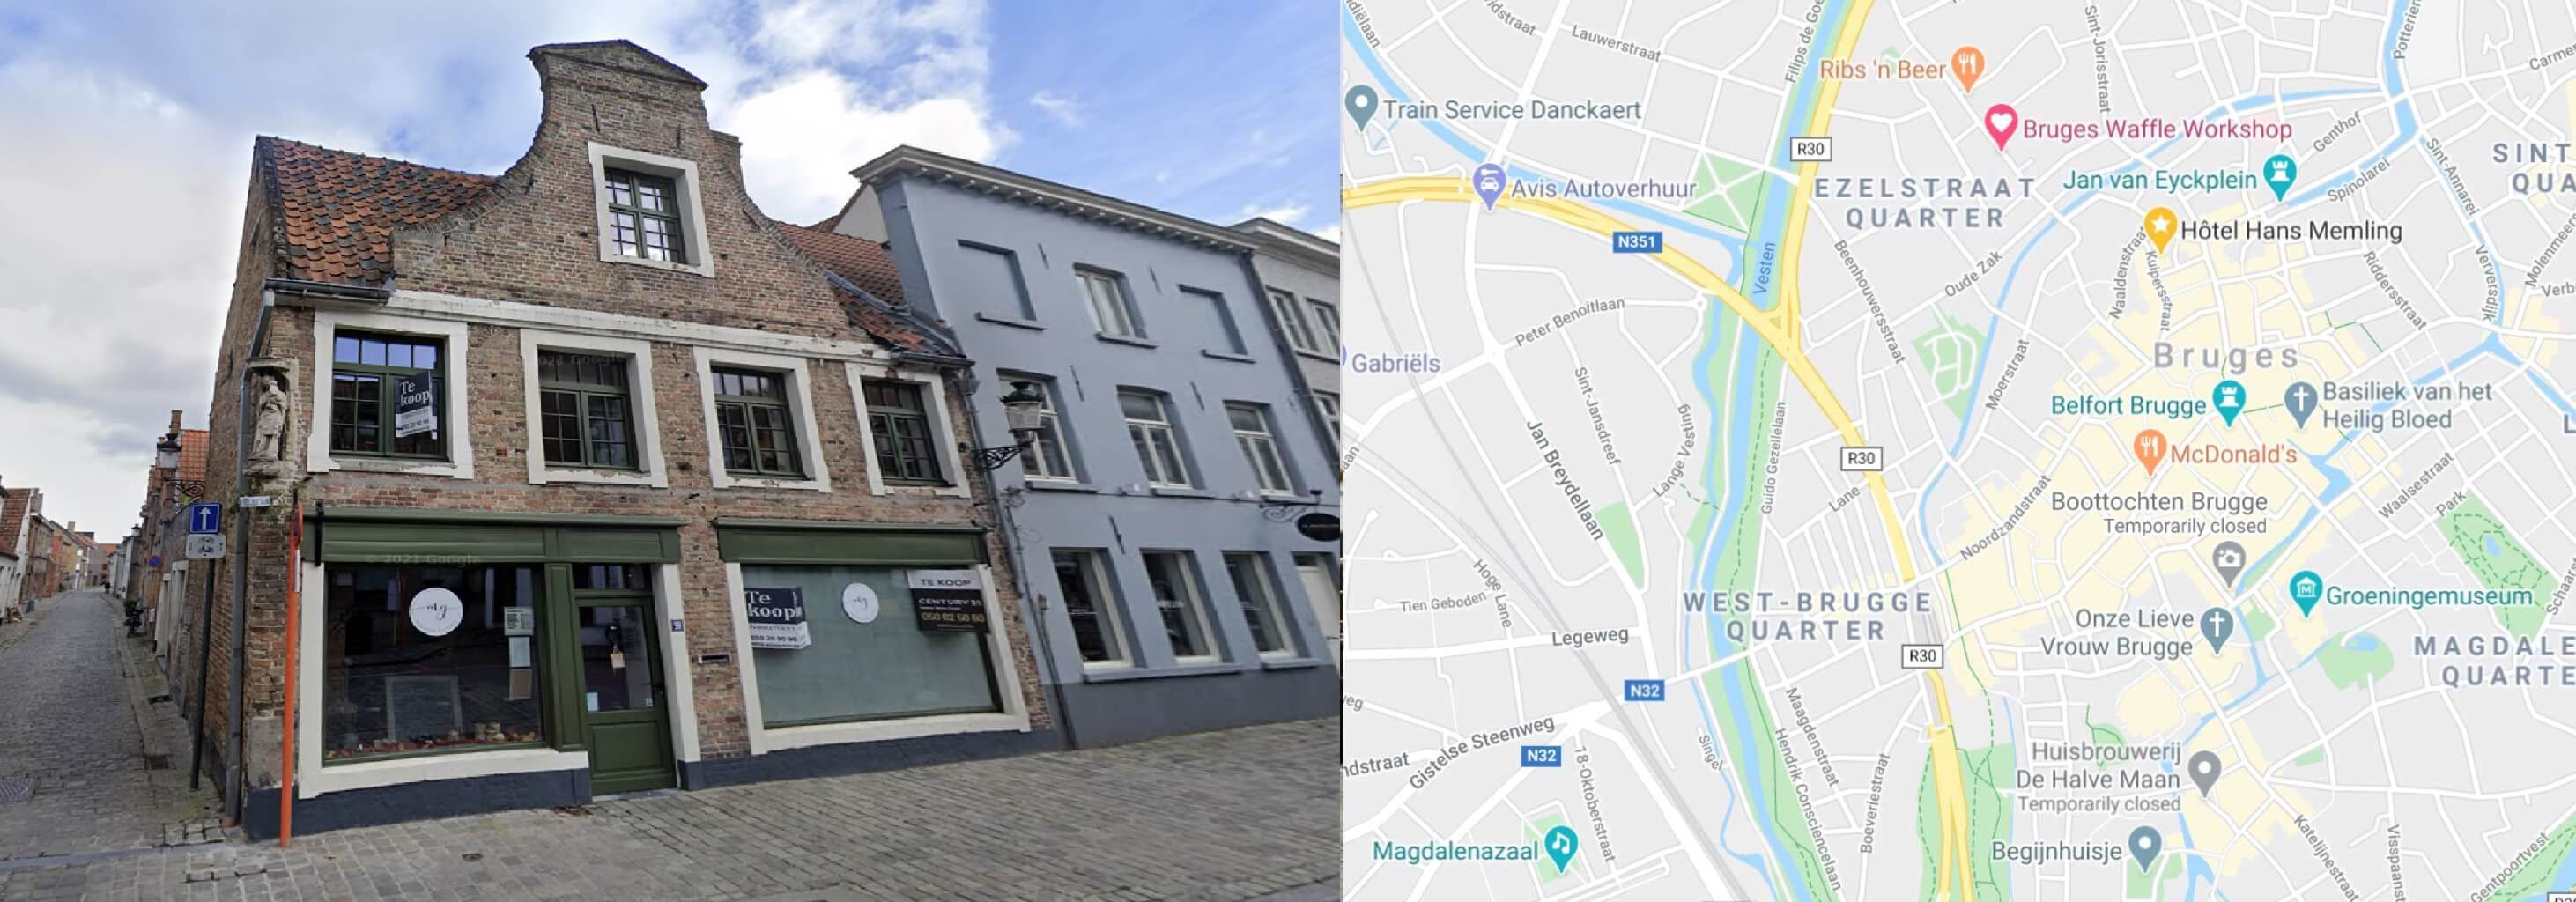 map and picture of the waffle workshop in Bruges, Belgium